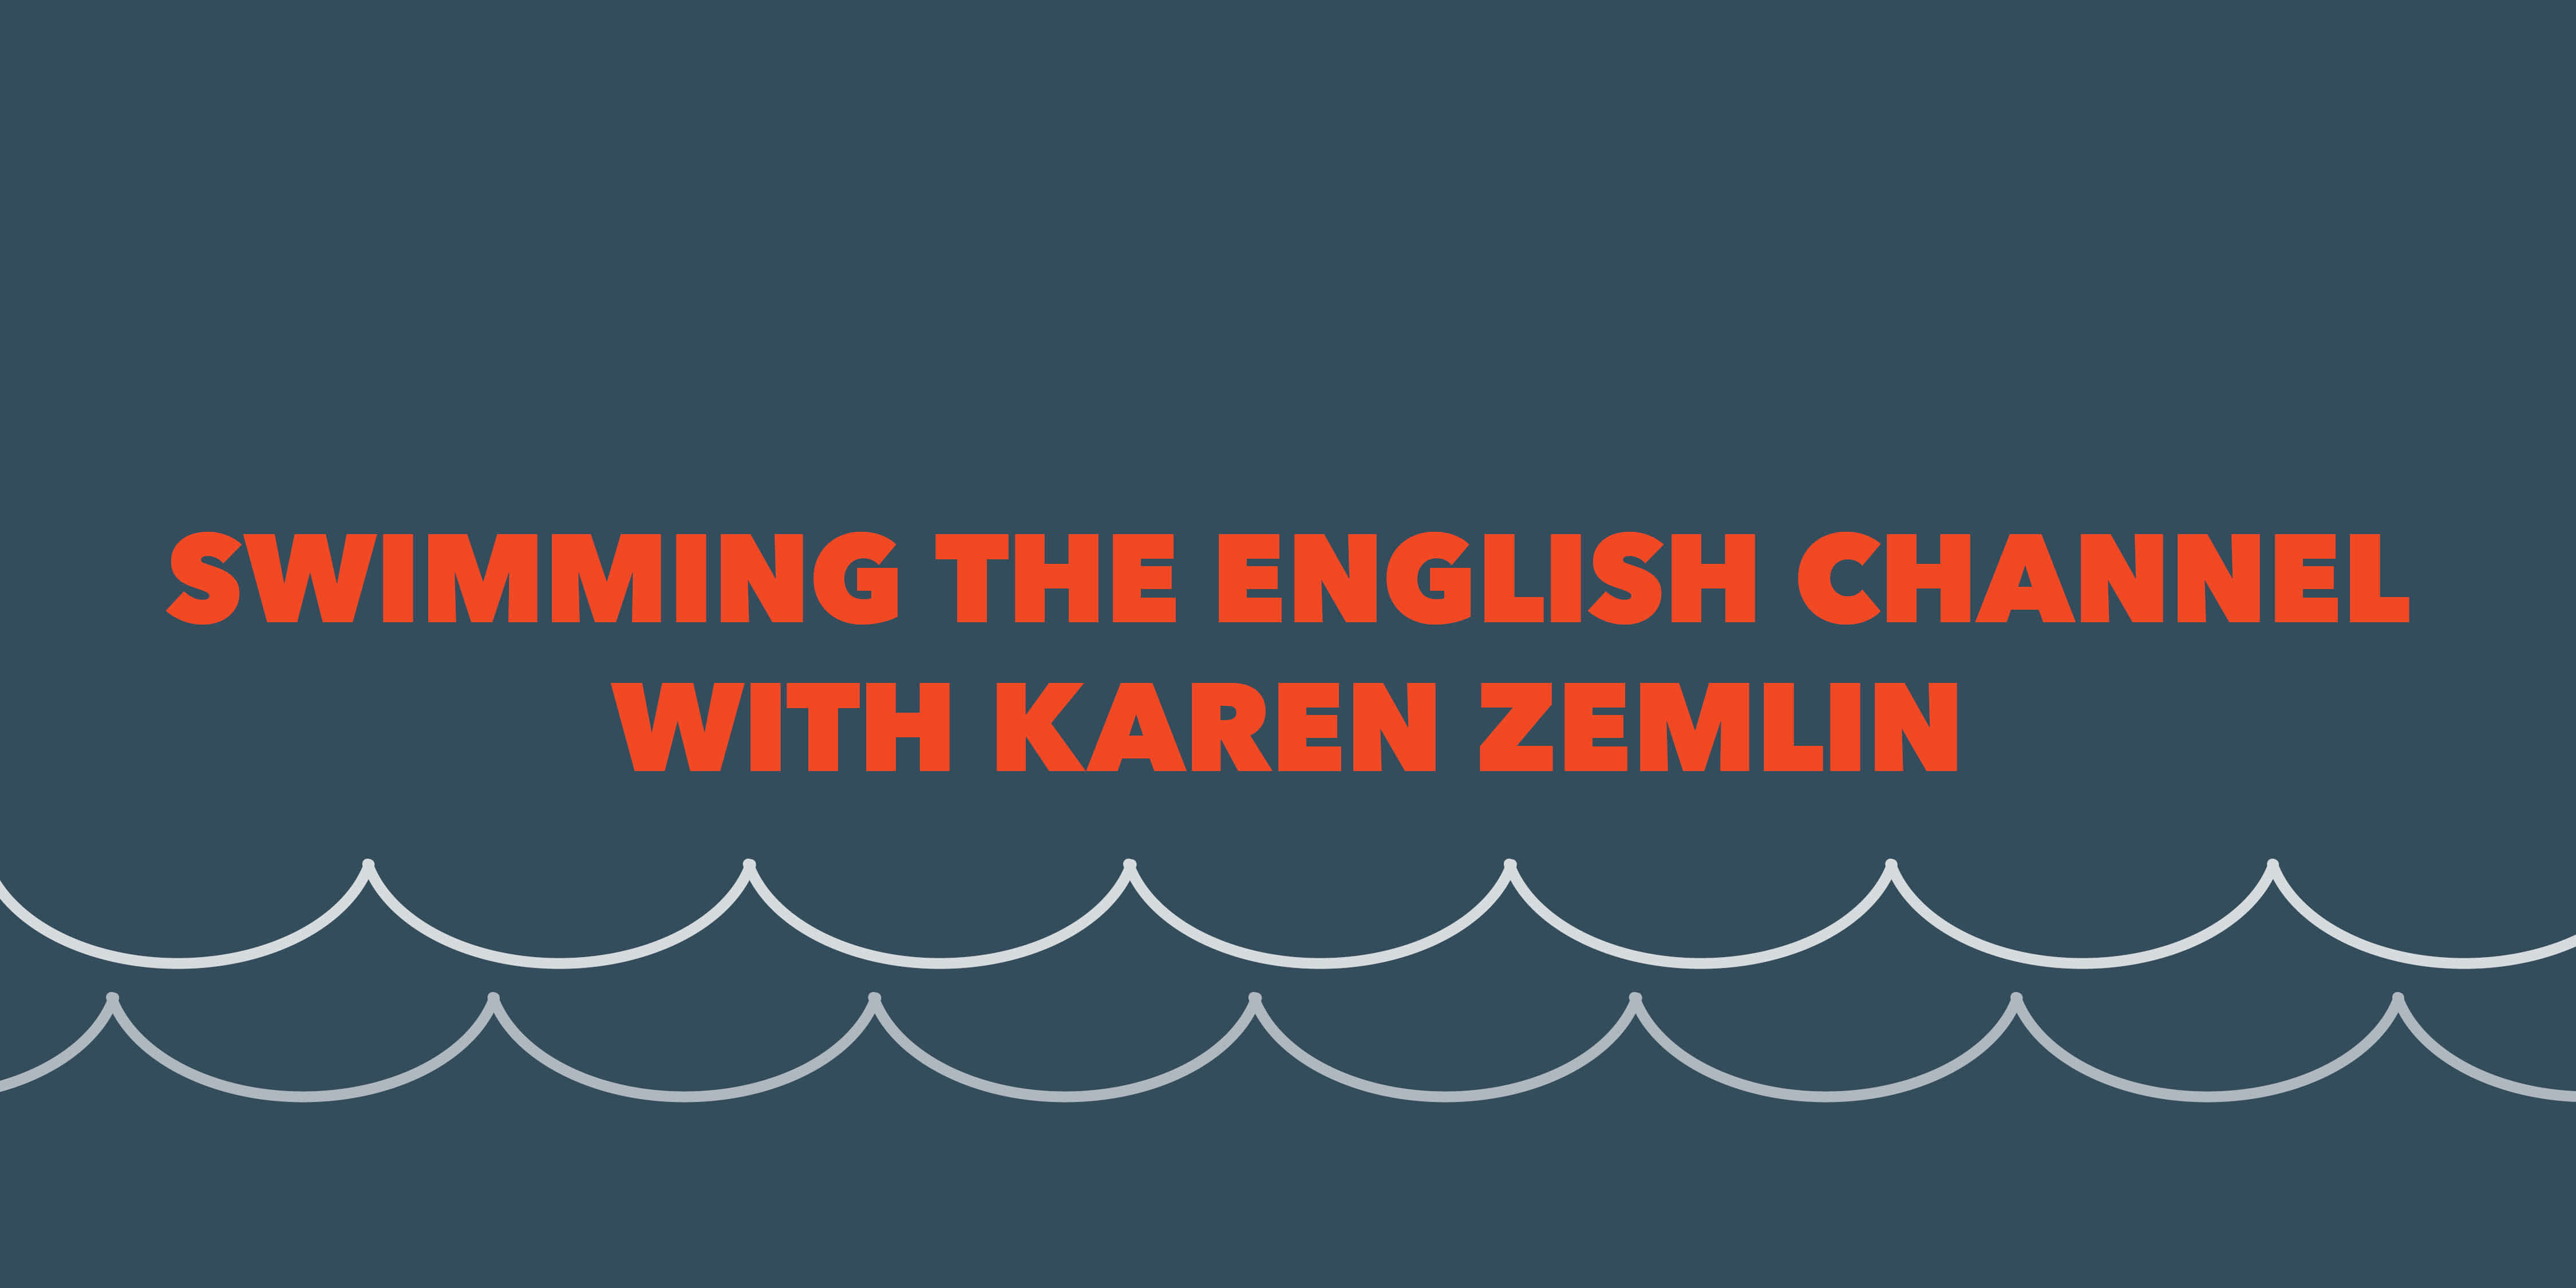 Swimming the English Channel blog header image